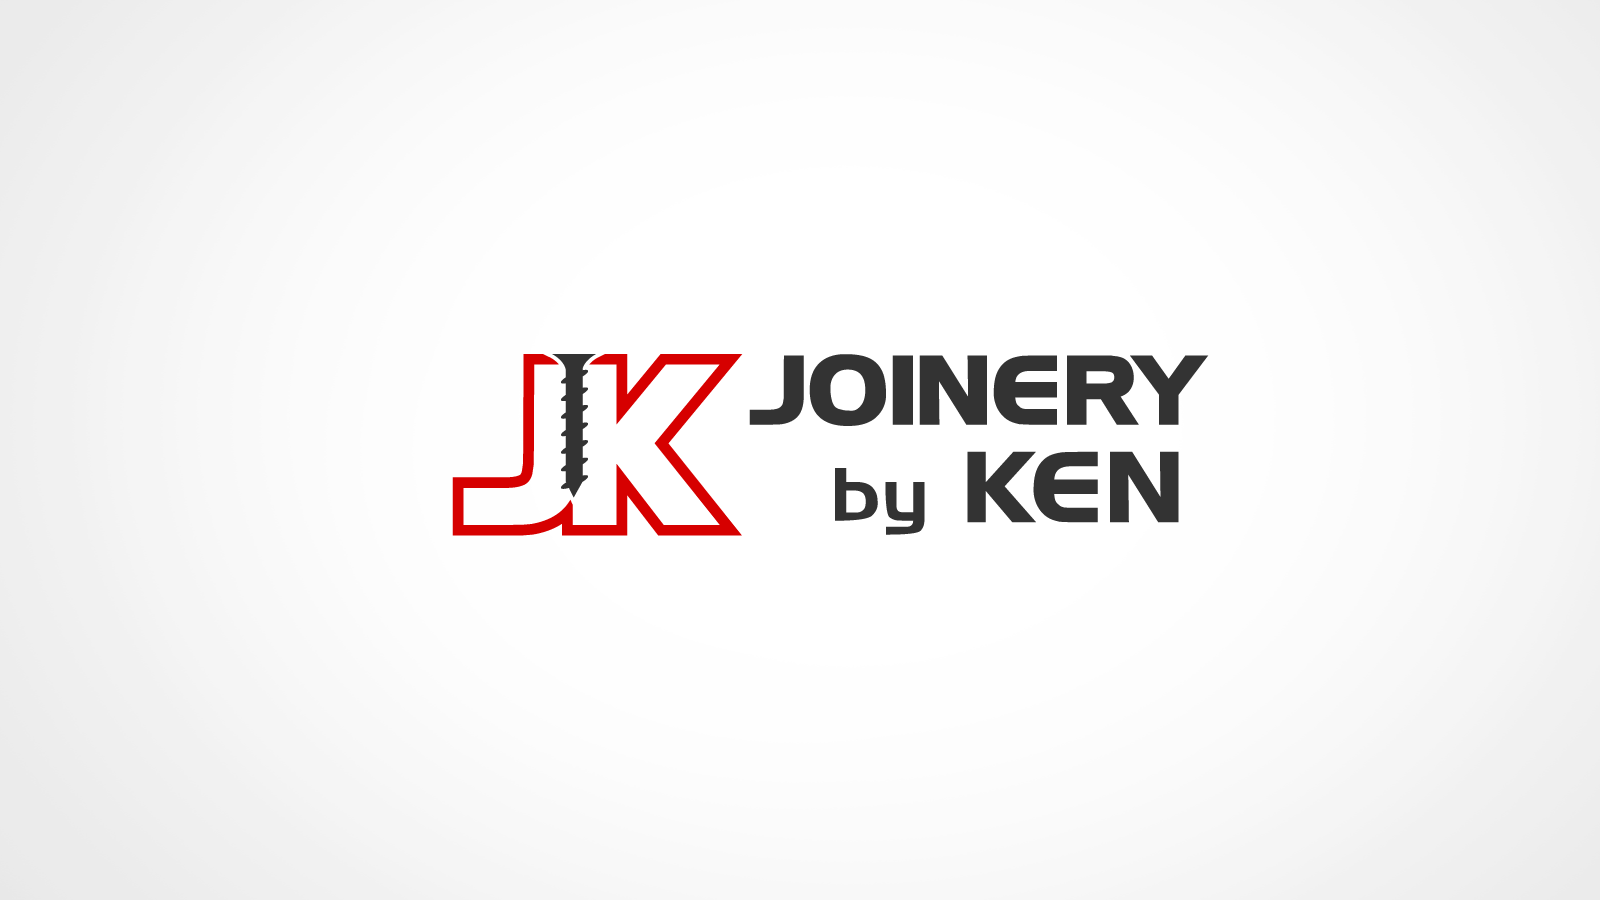 Help a startup joinery business make itself known to the world